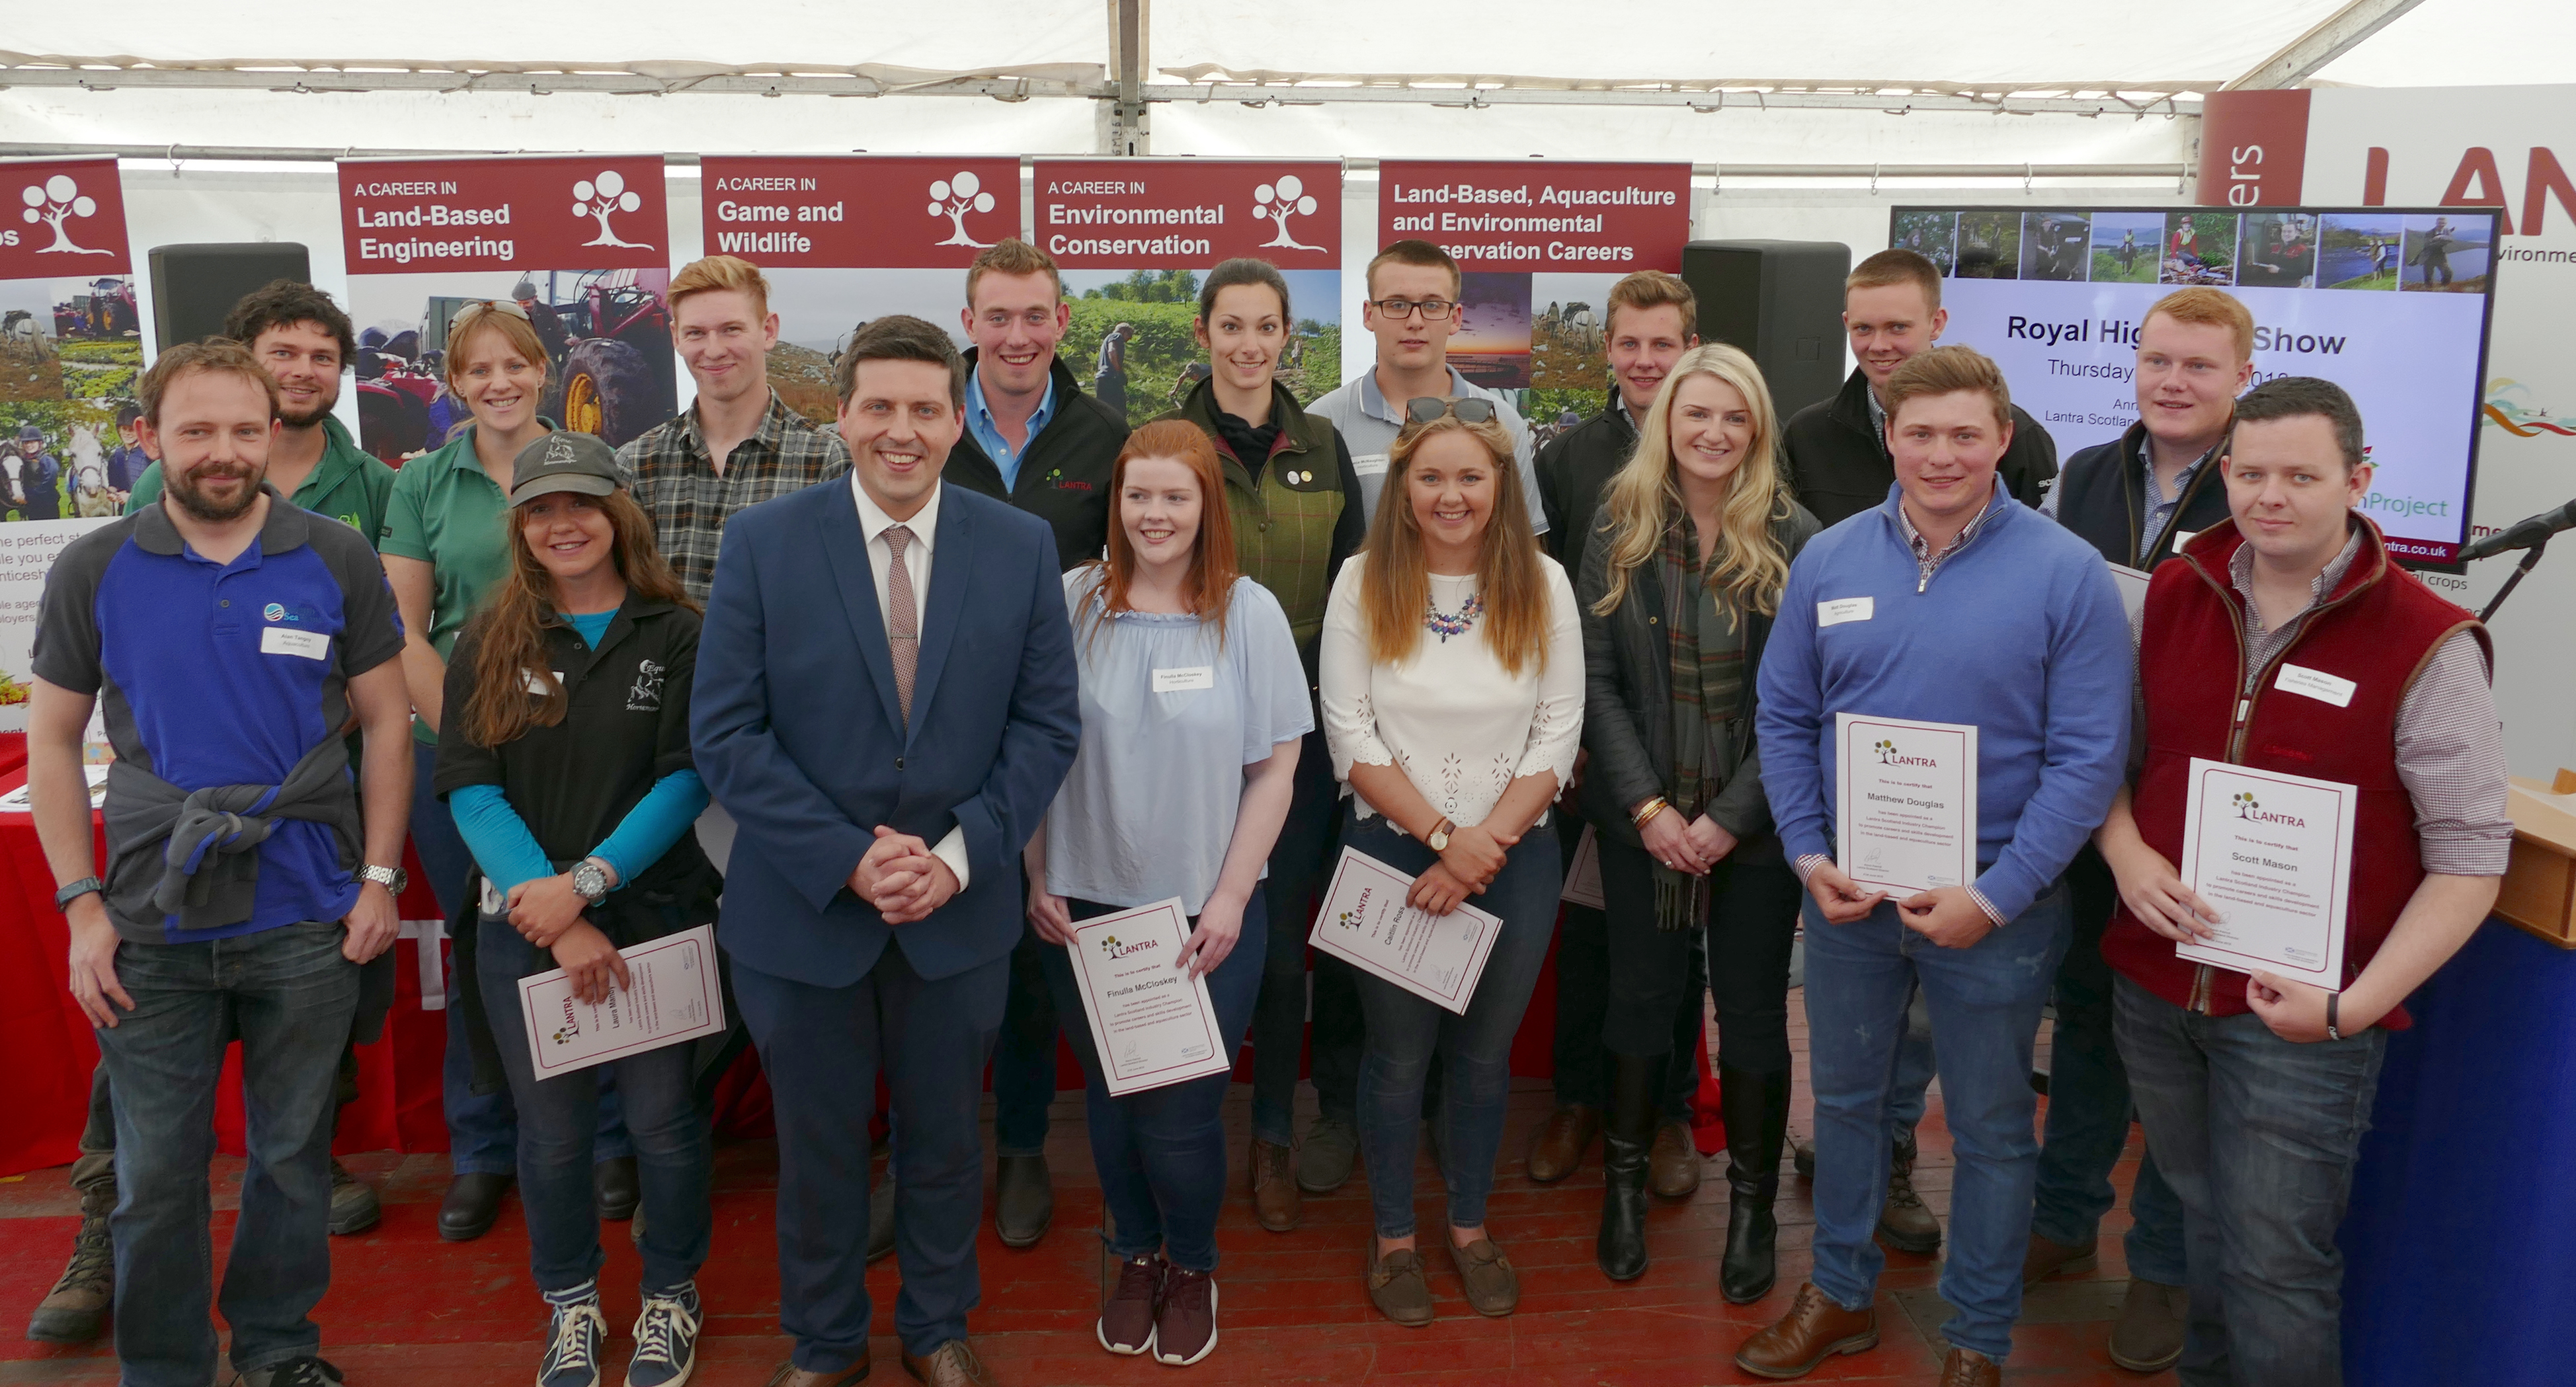 Our industry champions with Jamie Hepburn MSP